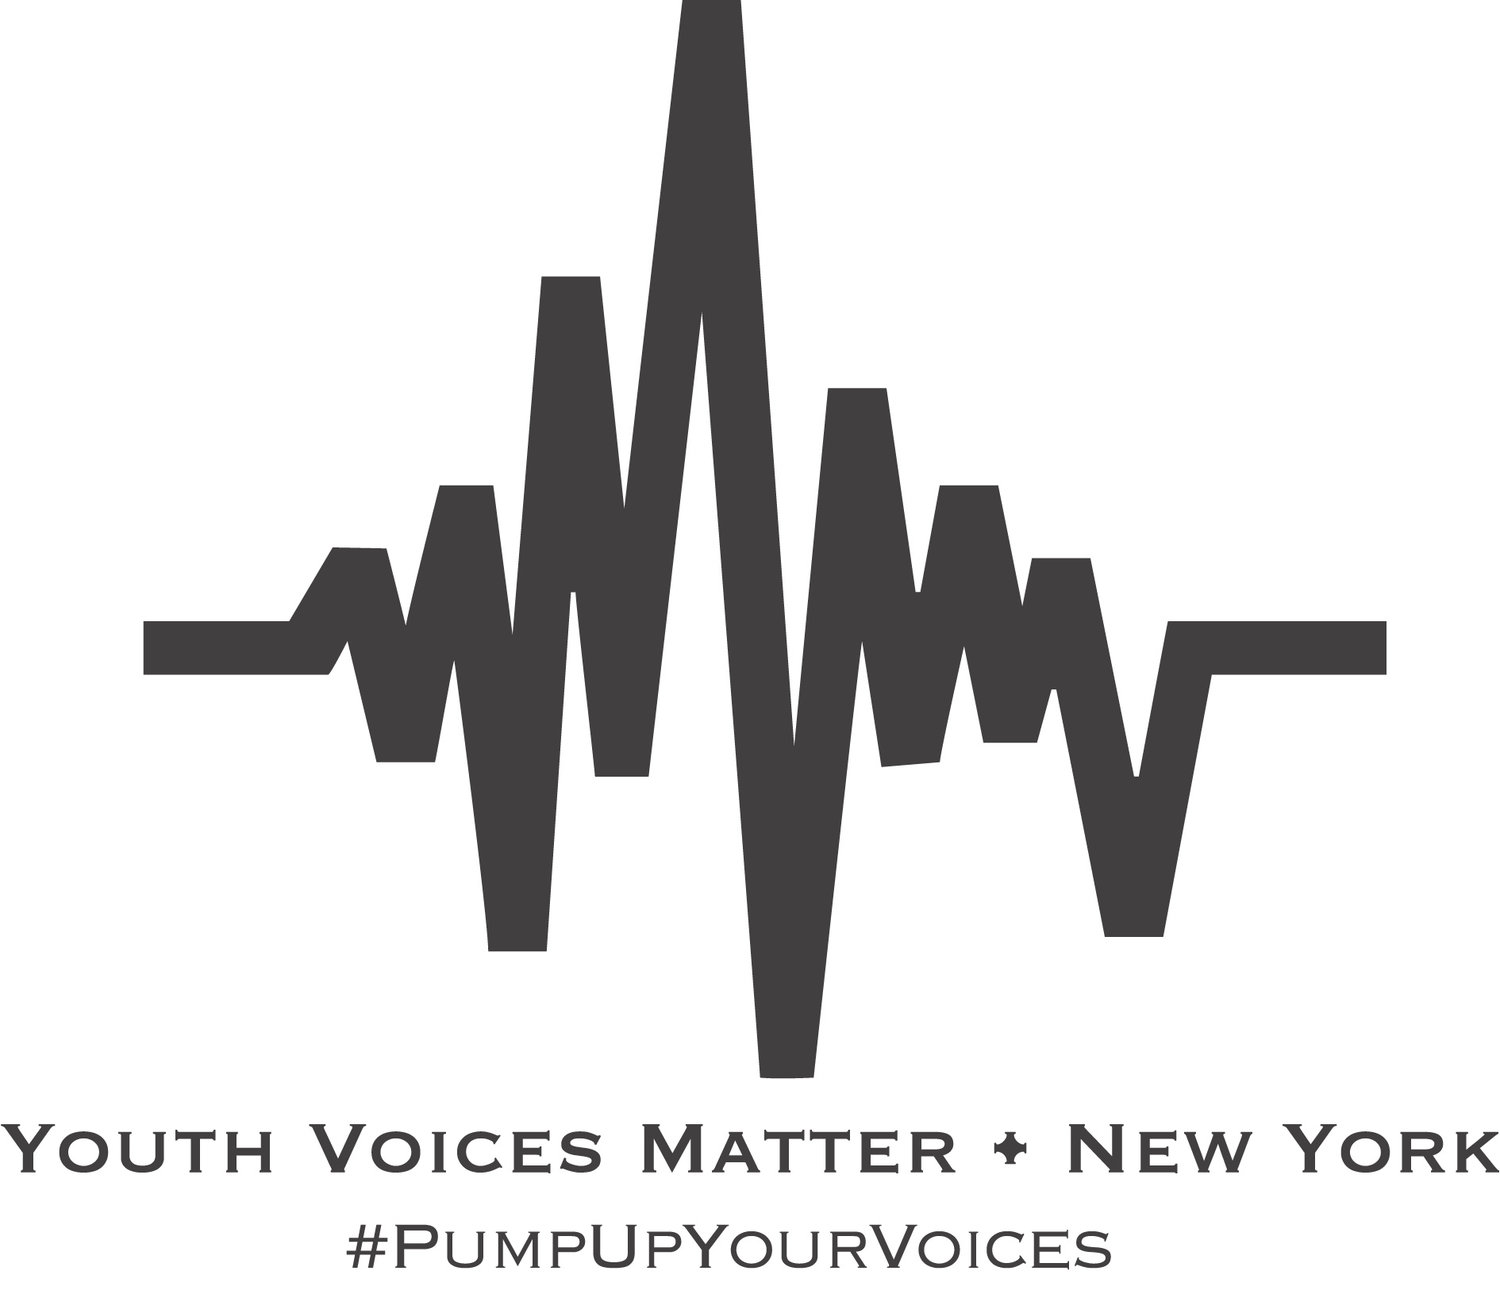 Youth Voices Matter NY